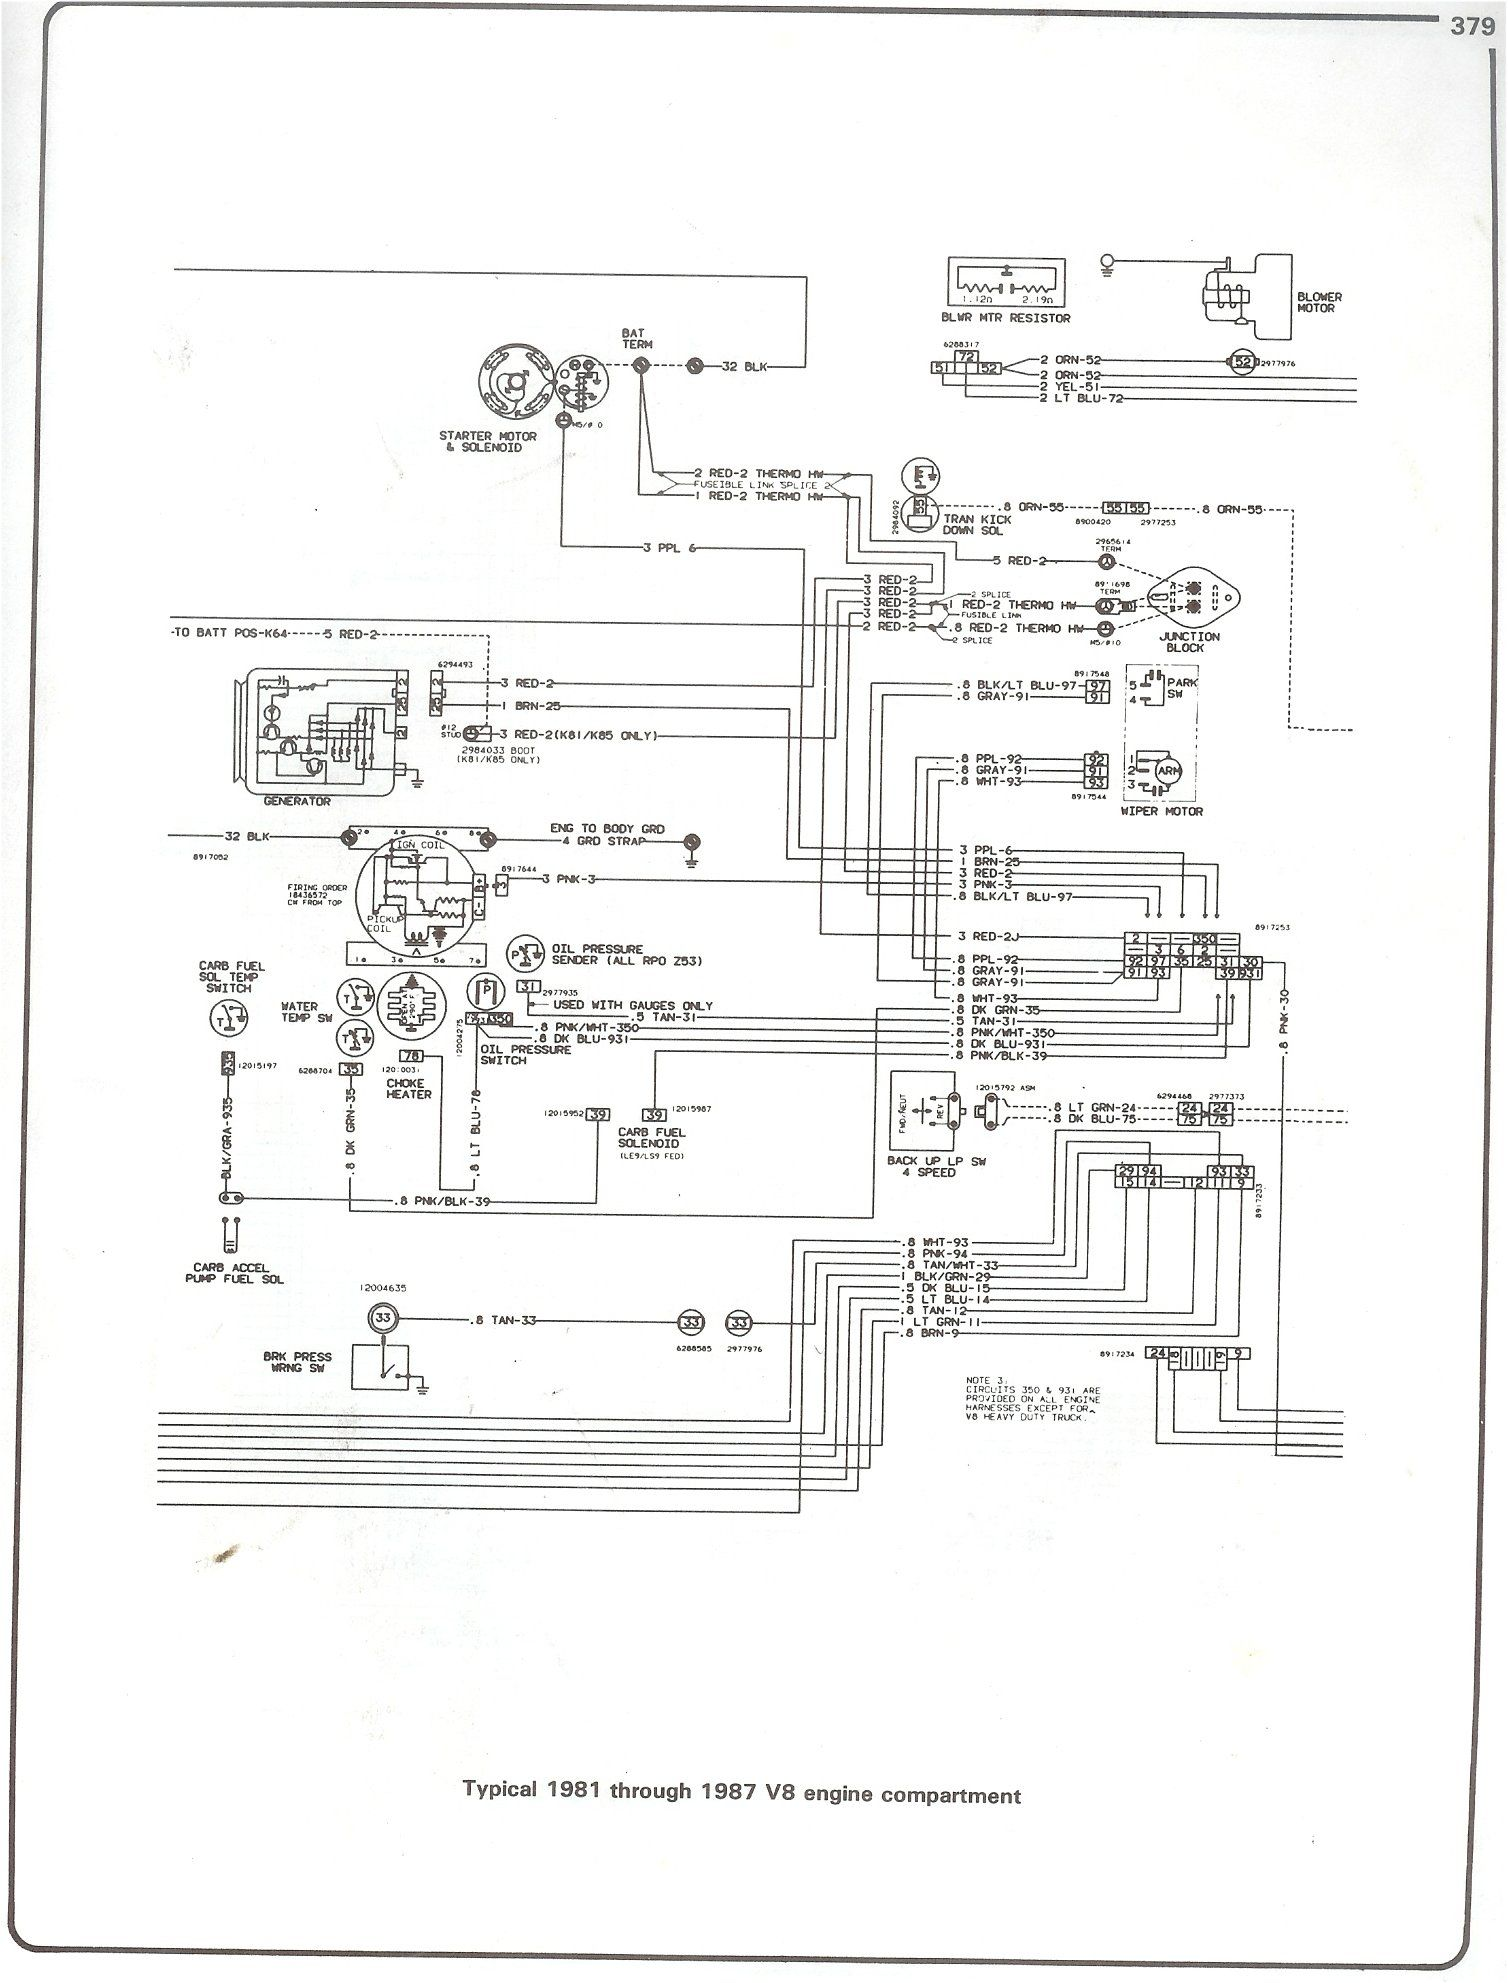 small resolution of 1987 chevy c10 fuse diagram wiring diagrams bib 87 chevy silverado fuse box diagram 1987 chevy